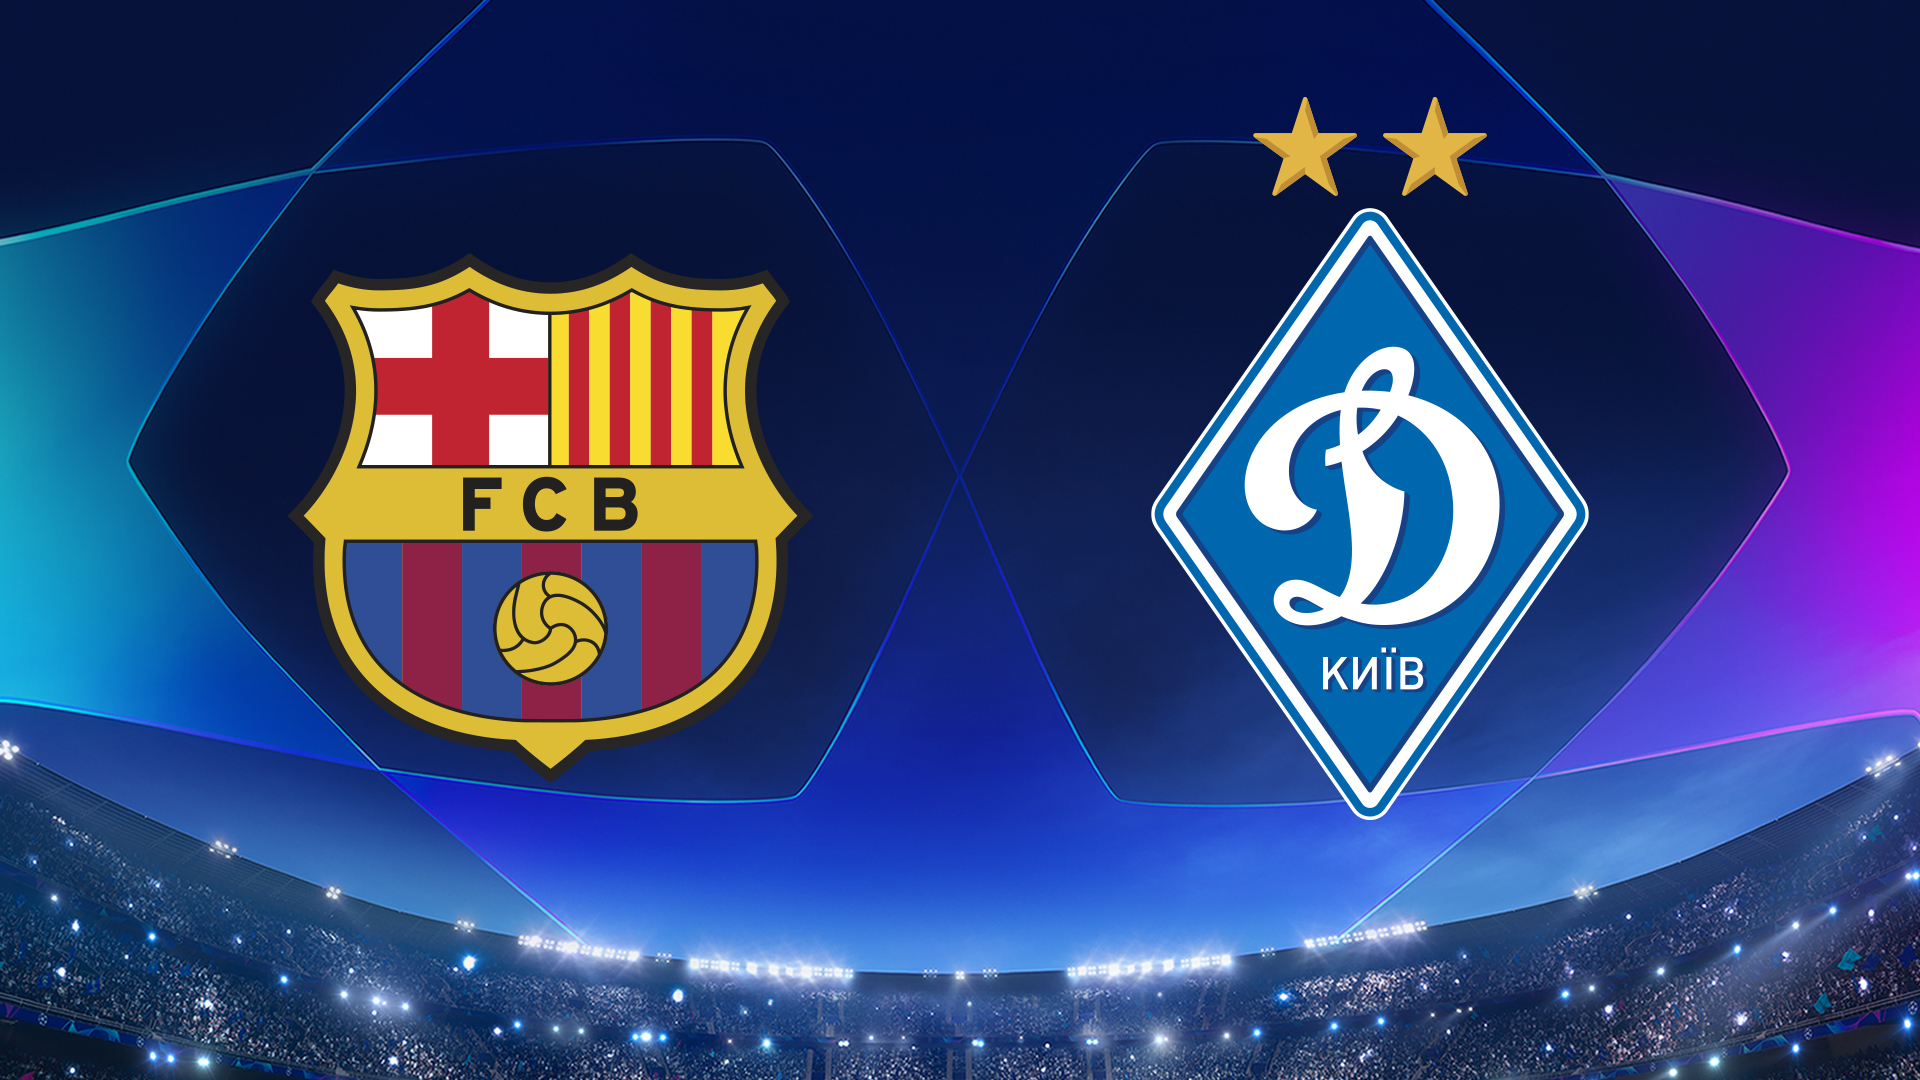 watch uefa champions league match highlights barcelona vs dynamo kyiv full show on cbs all access watch uefa champions league match highlights barcelona vs dynamo kyiv full show on cbs all access